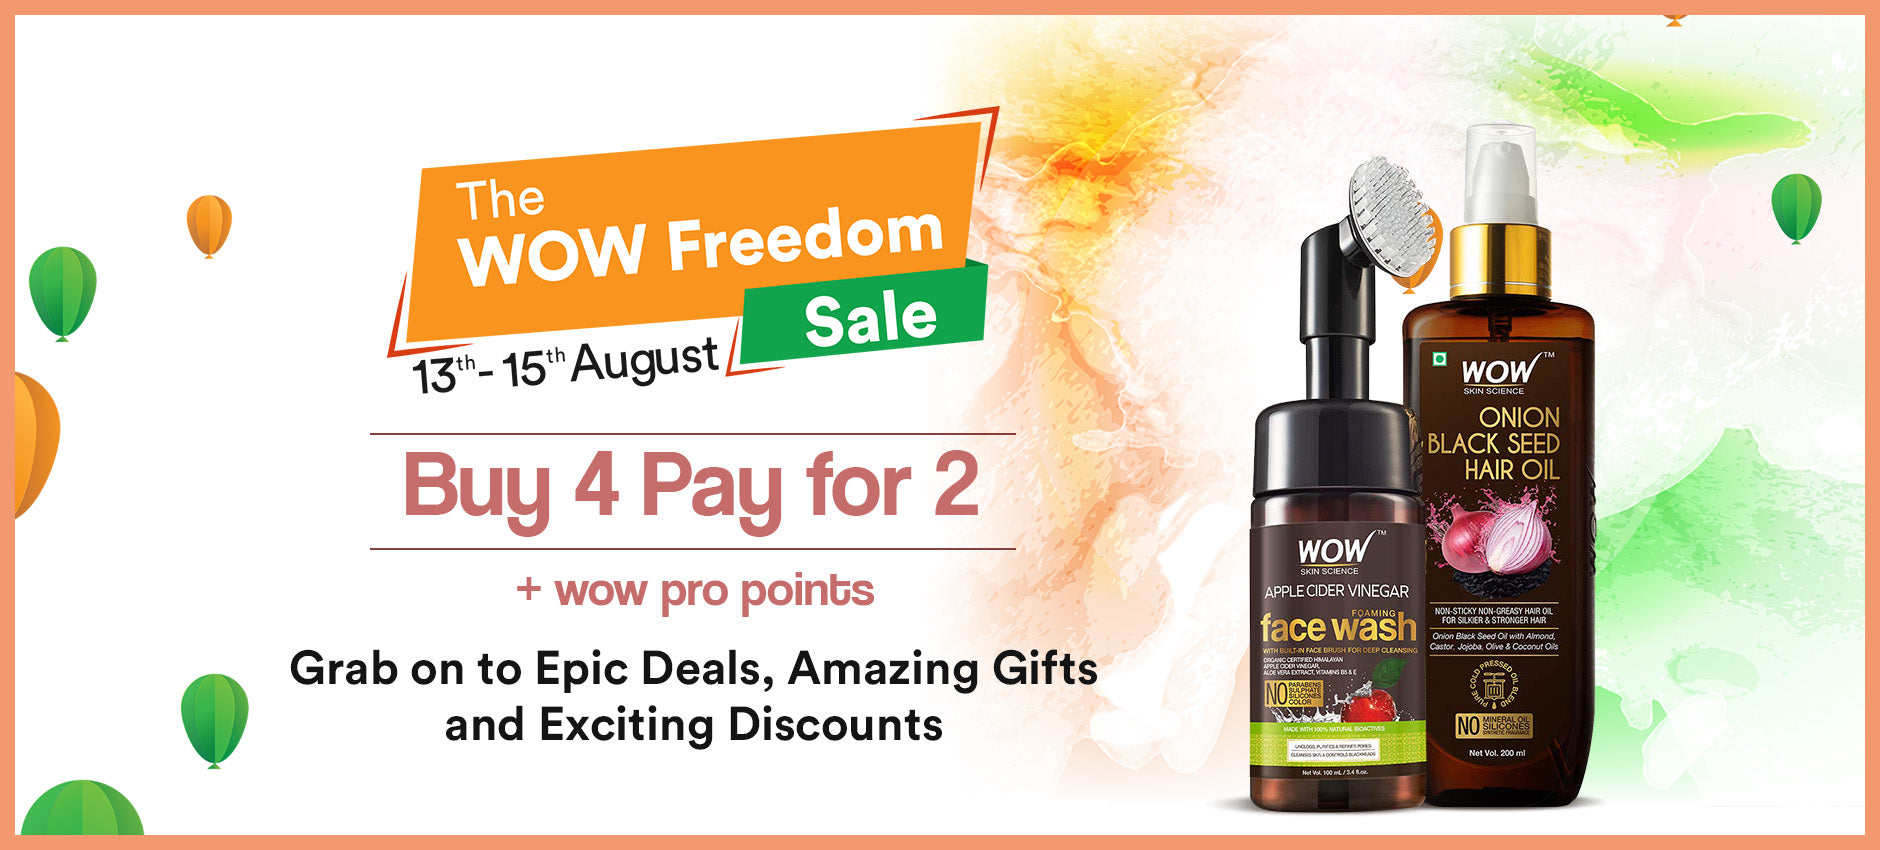 The WOW Freedom Sale